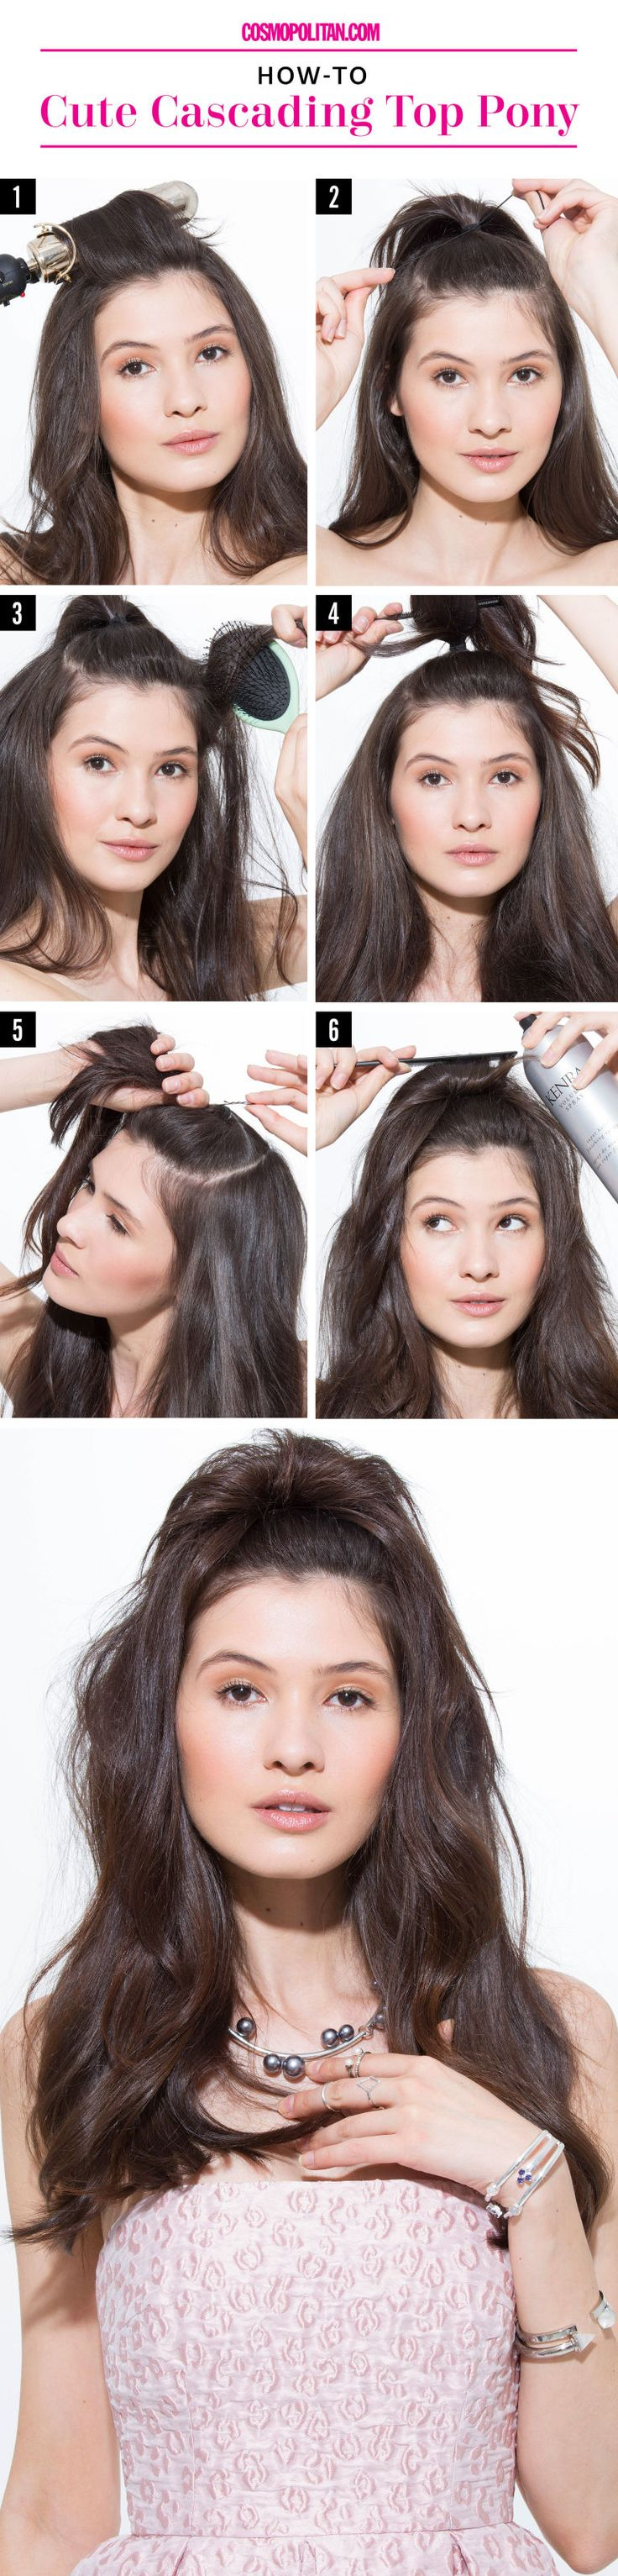 In need of a last-minute prom/evening/formal hairstyle, and don't want the cookie-cutter updo your stylist might serve up?